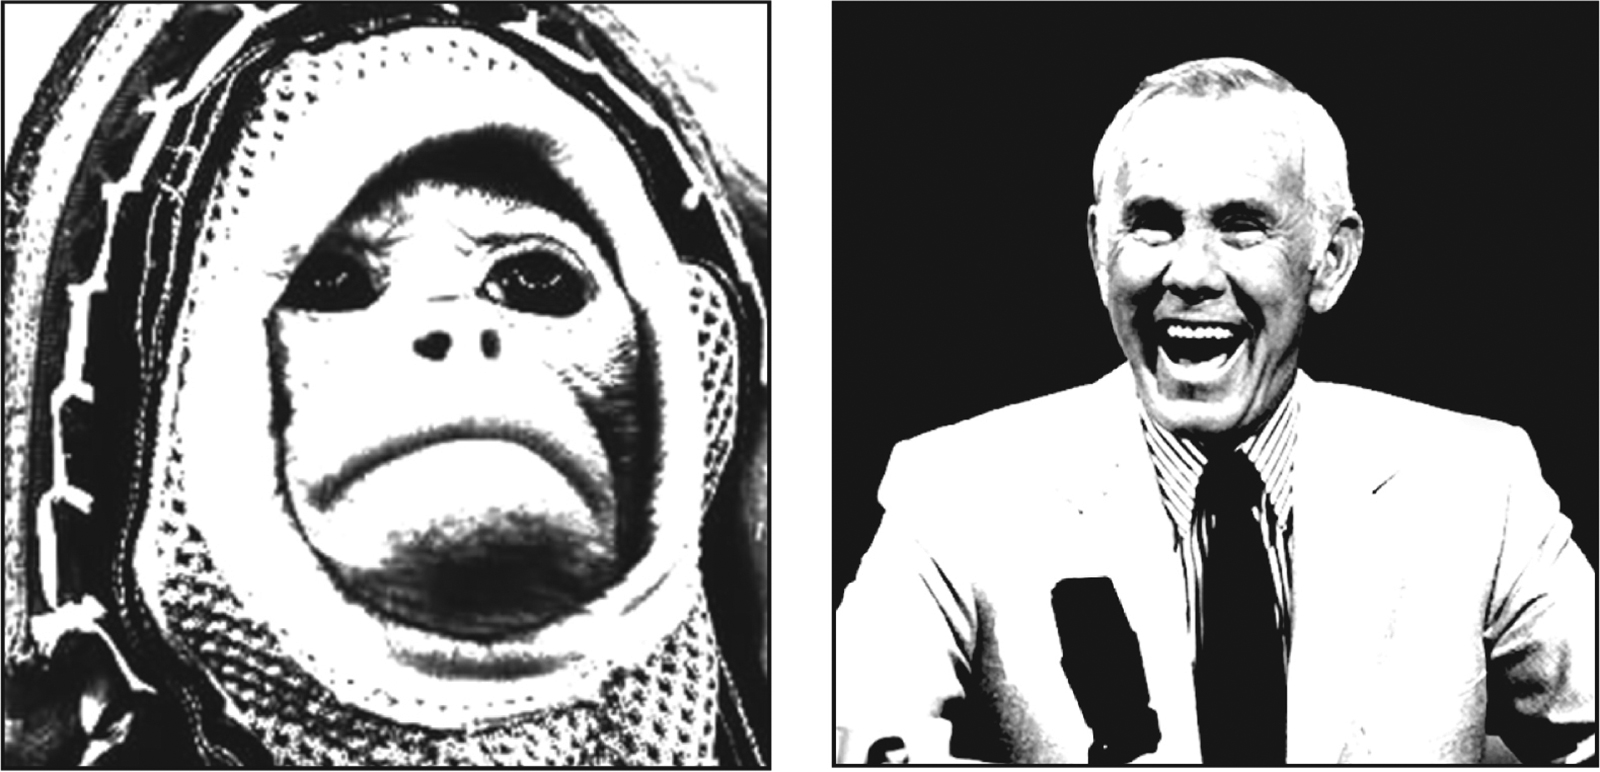 Concept pair of Albert the space monkey and Johnny Carson highlighting the public's perceptual of current topics